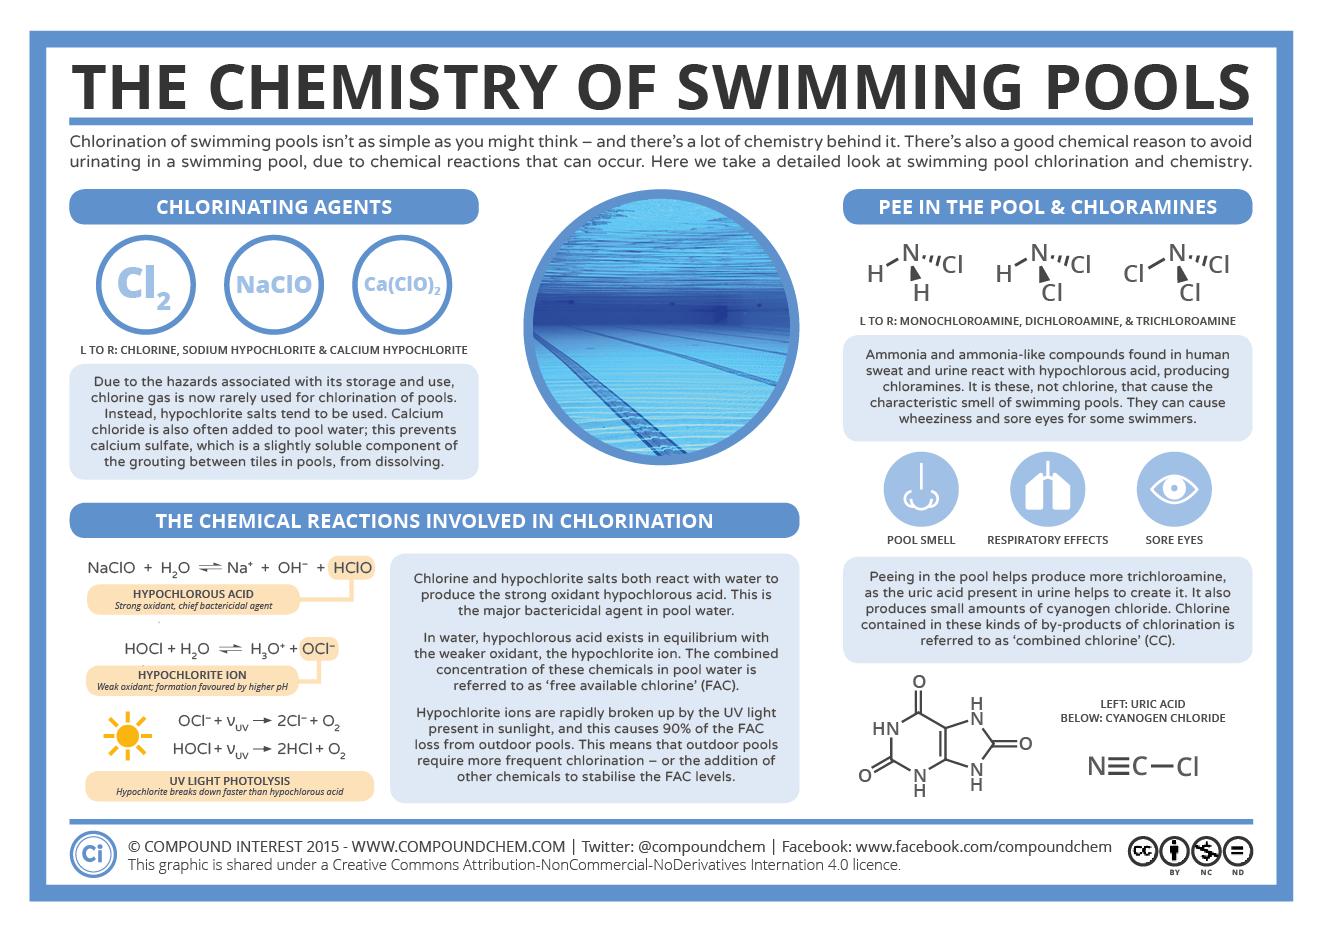 Chlorination Pee In The Pool The Chemistry Of Swimming Pools Compound Interest